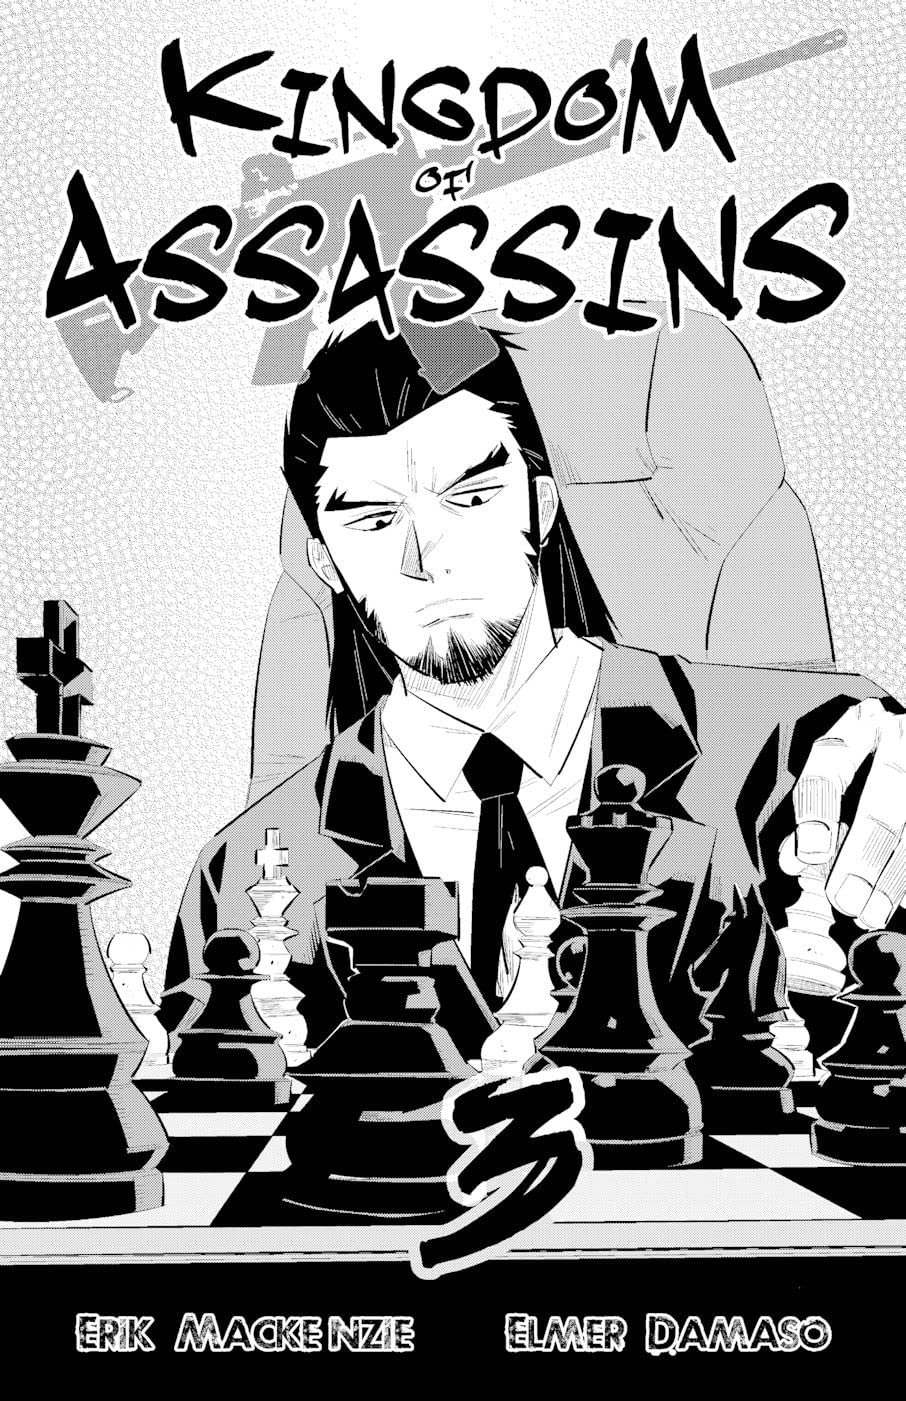 Kingdom of Assassins #3